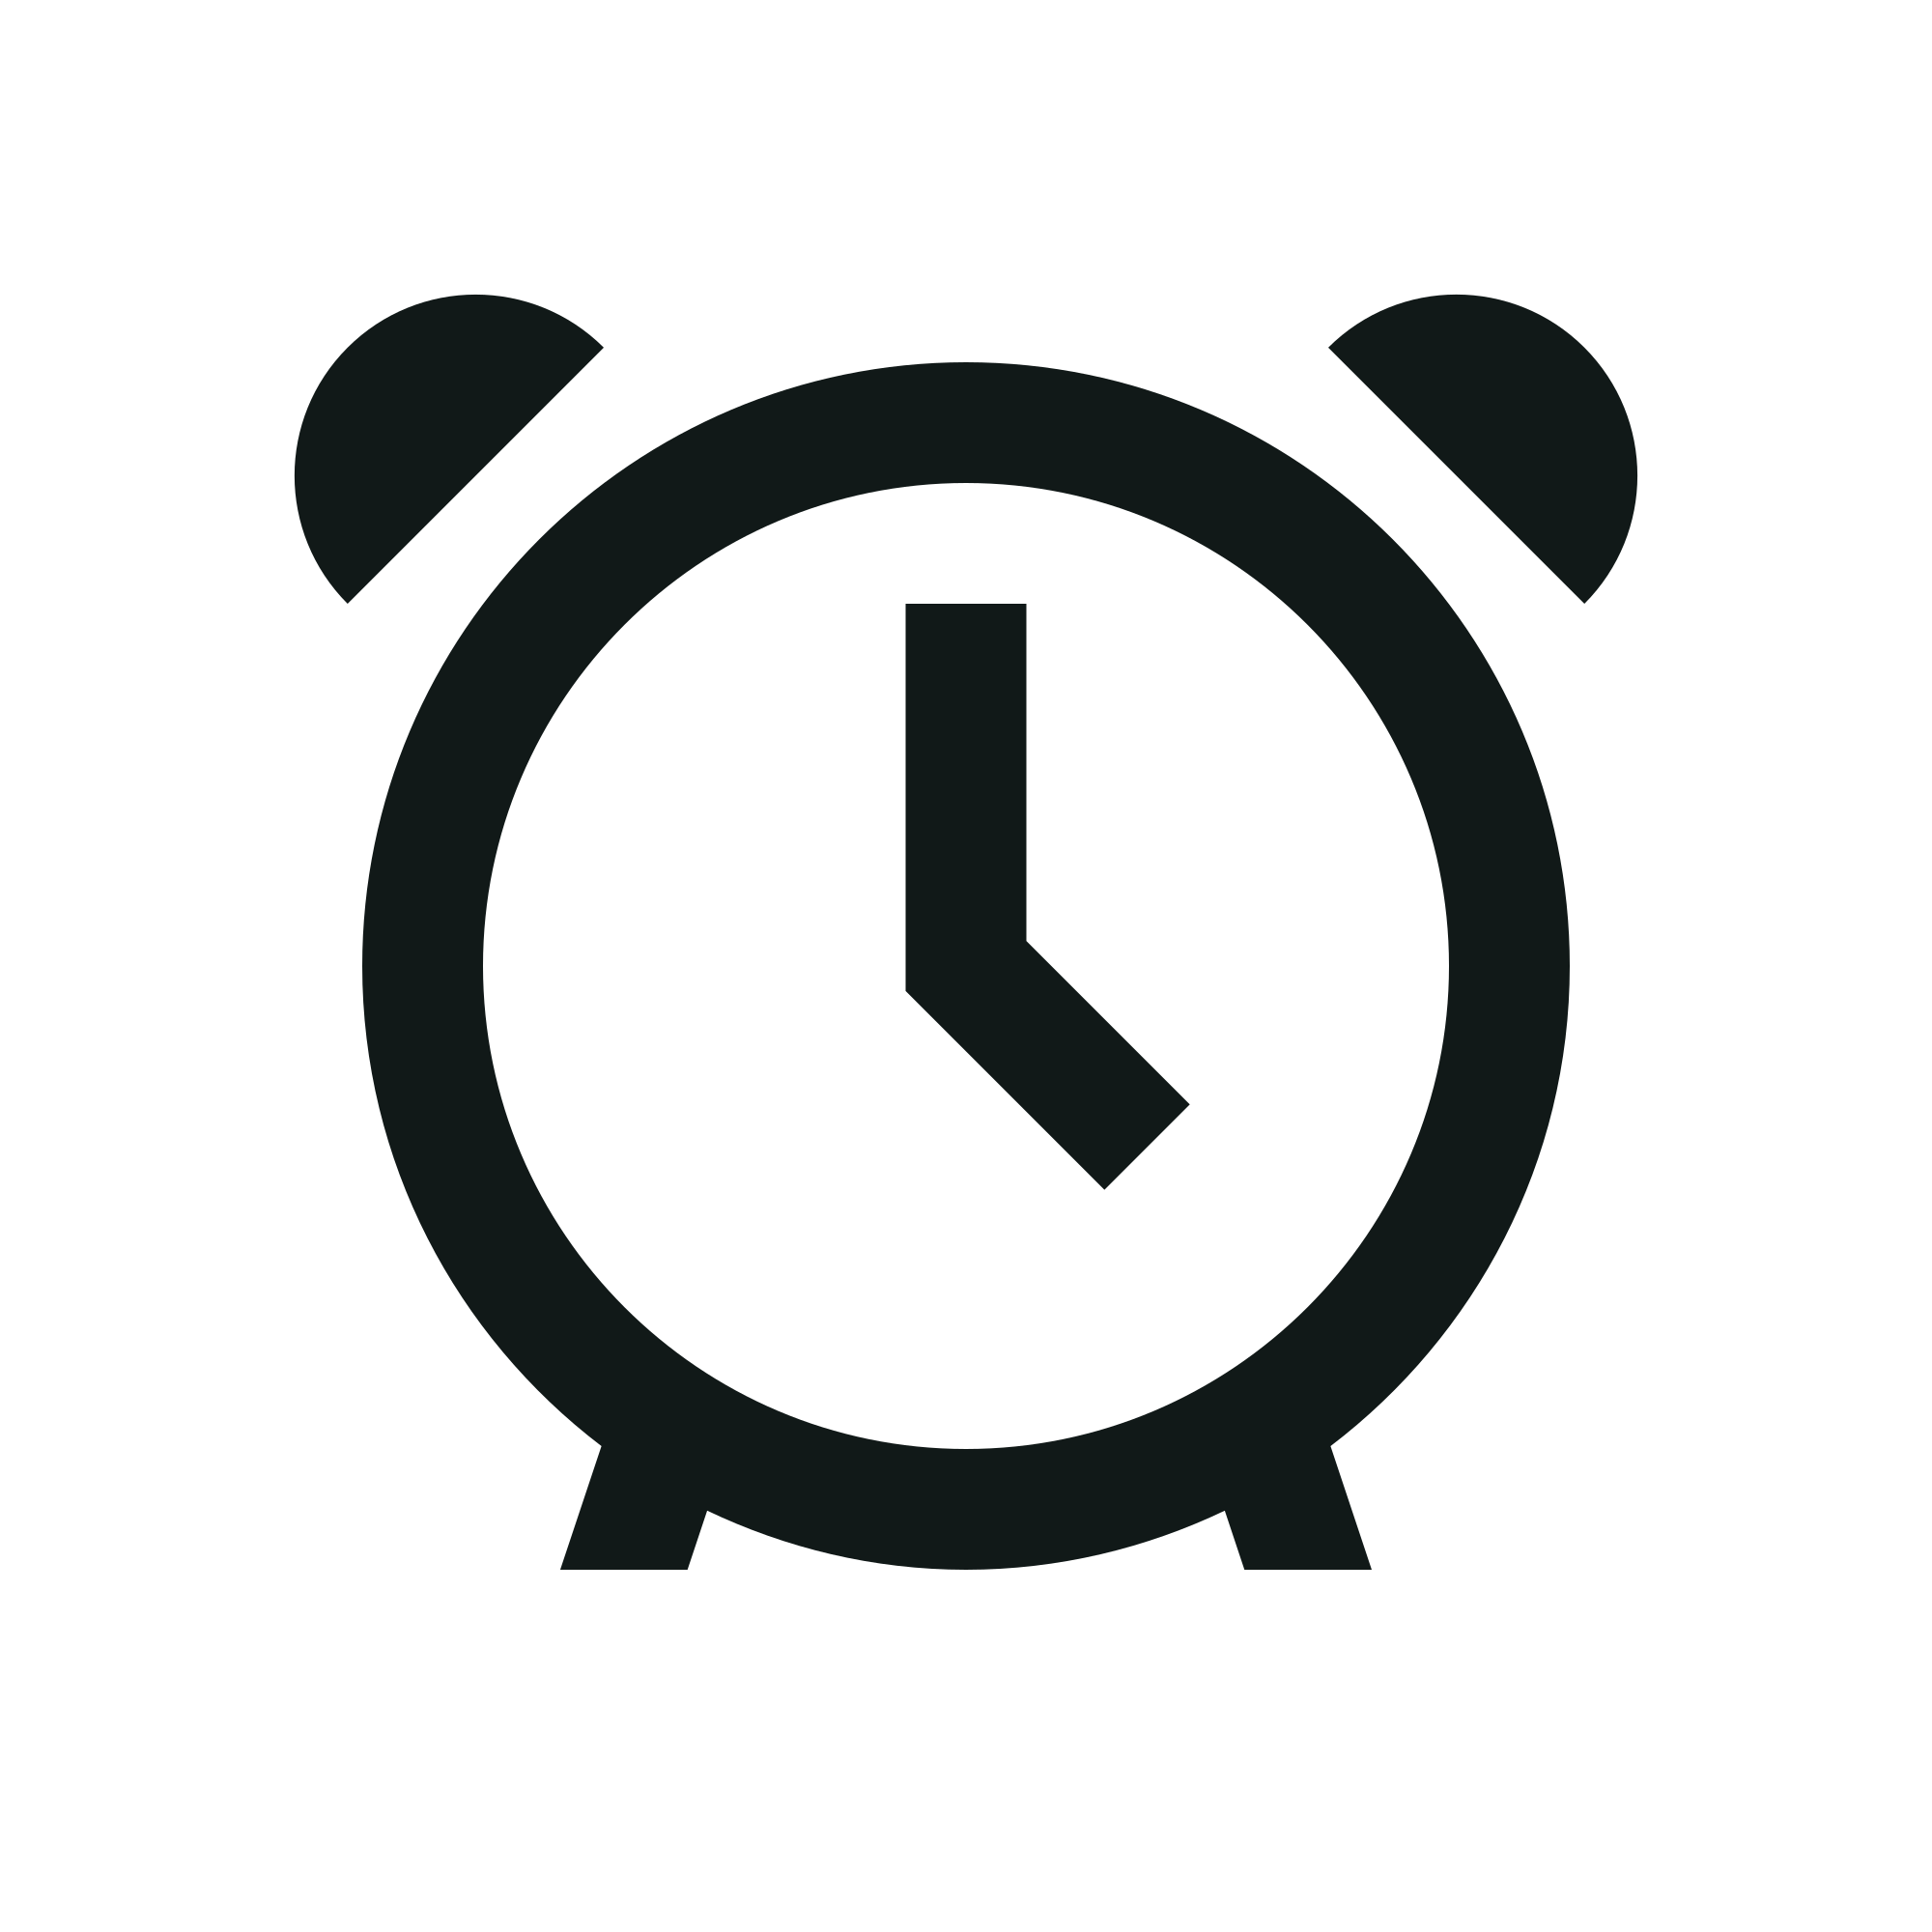 graphic stock alarm clipart alarming #75985064